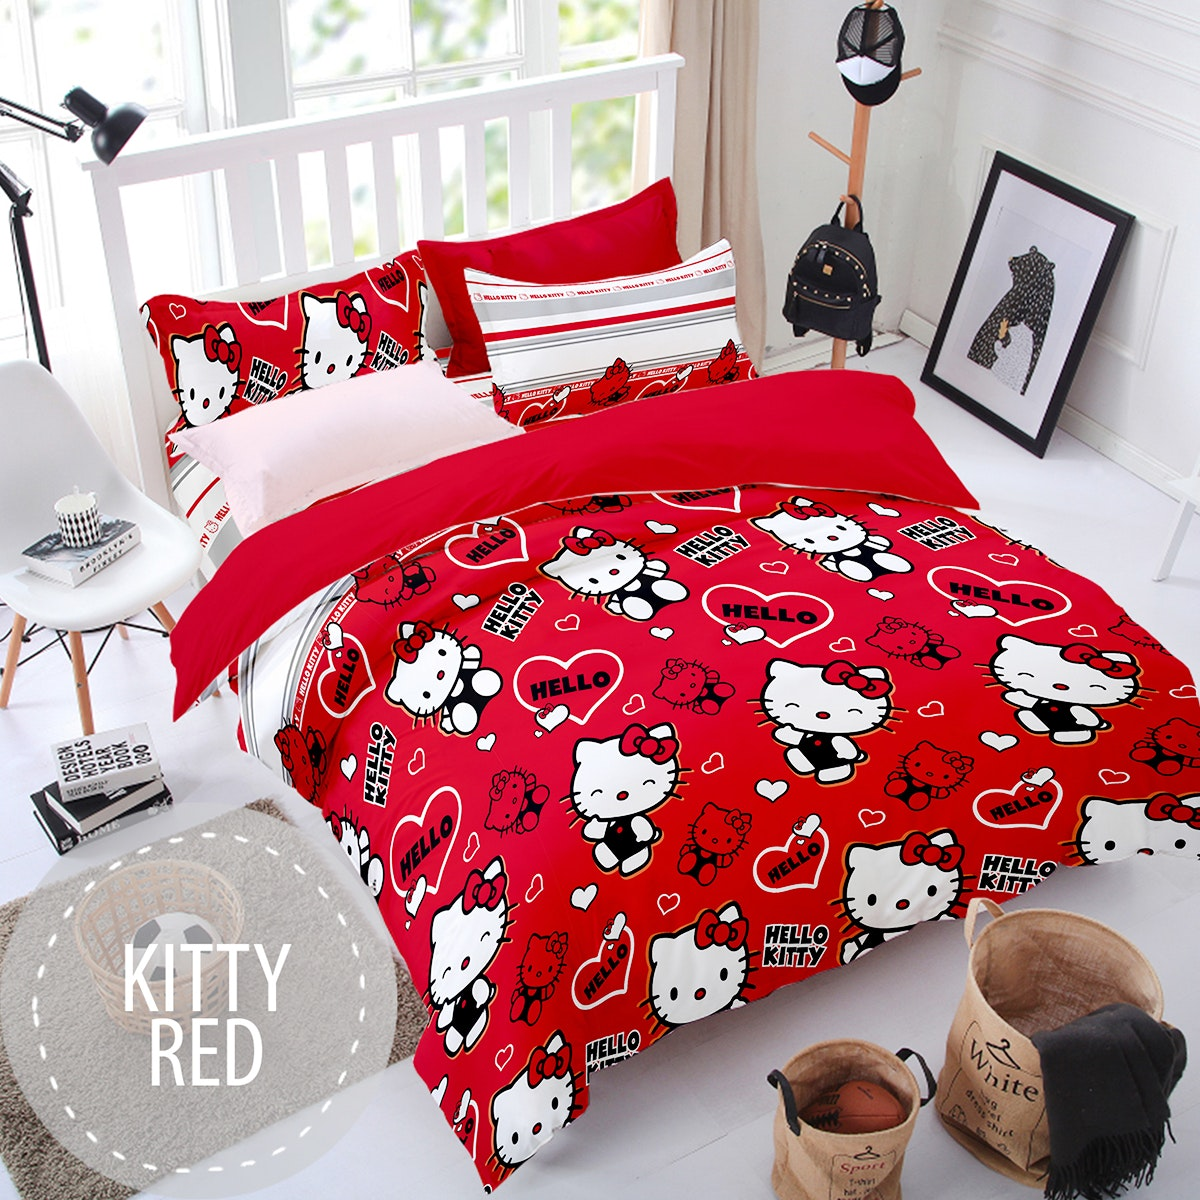 Pesona Sprei Disperse Kitty Red uk 120 T 20